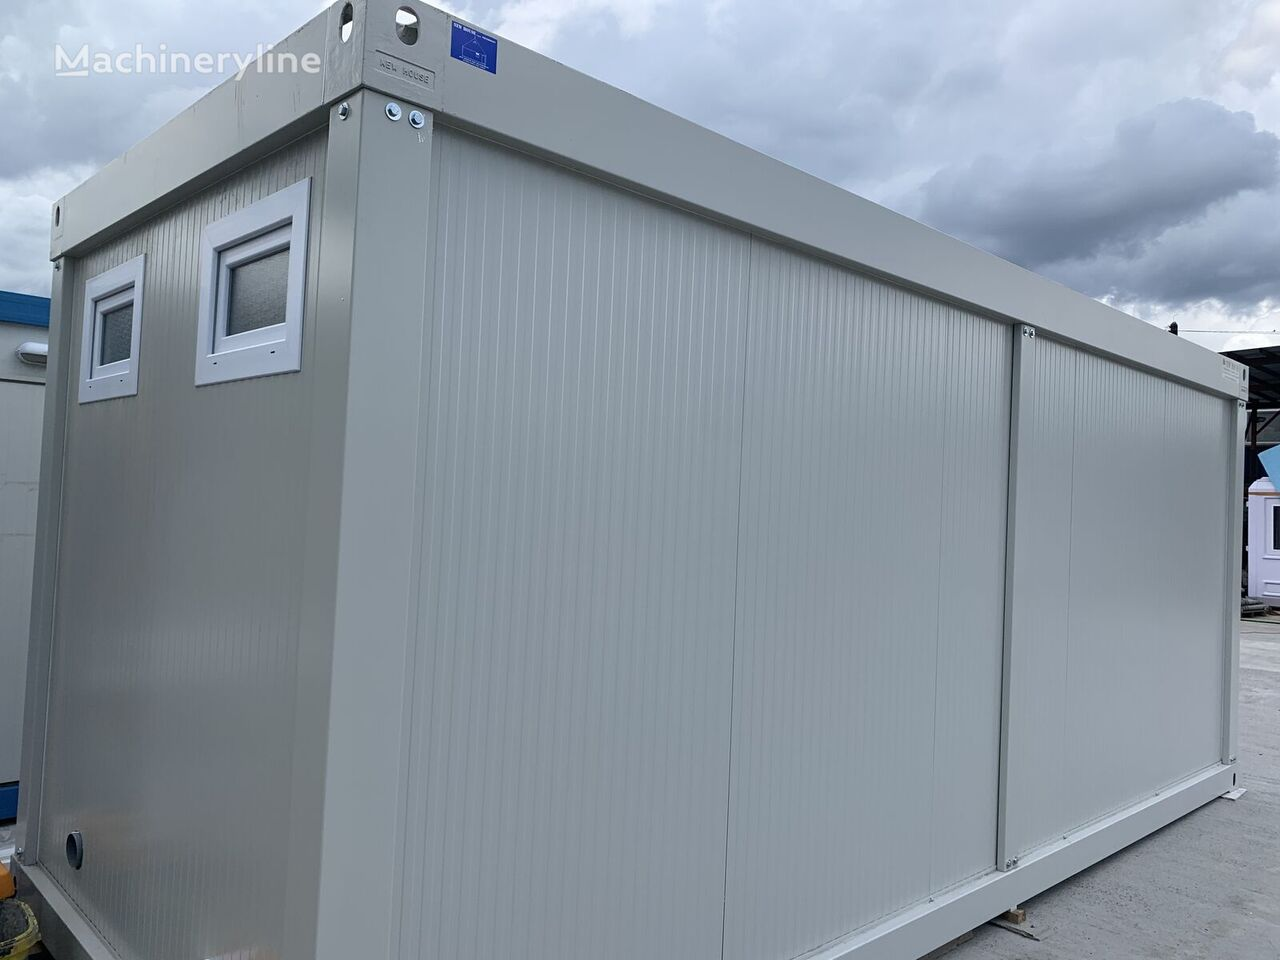 new sanitary container